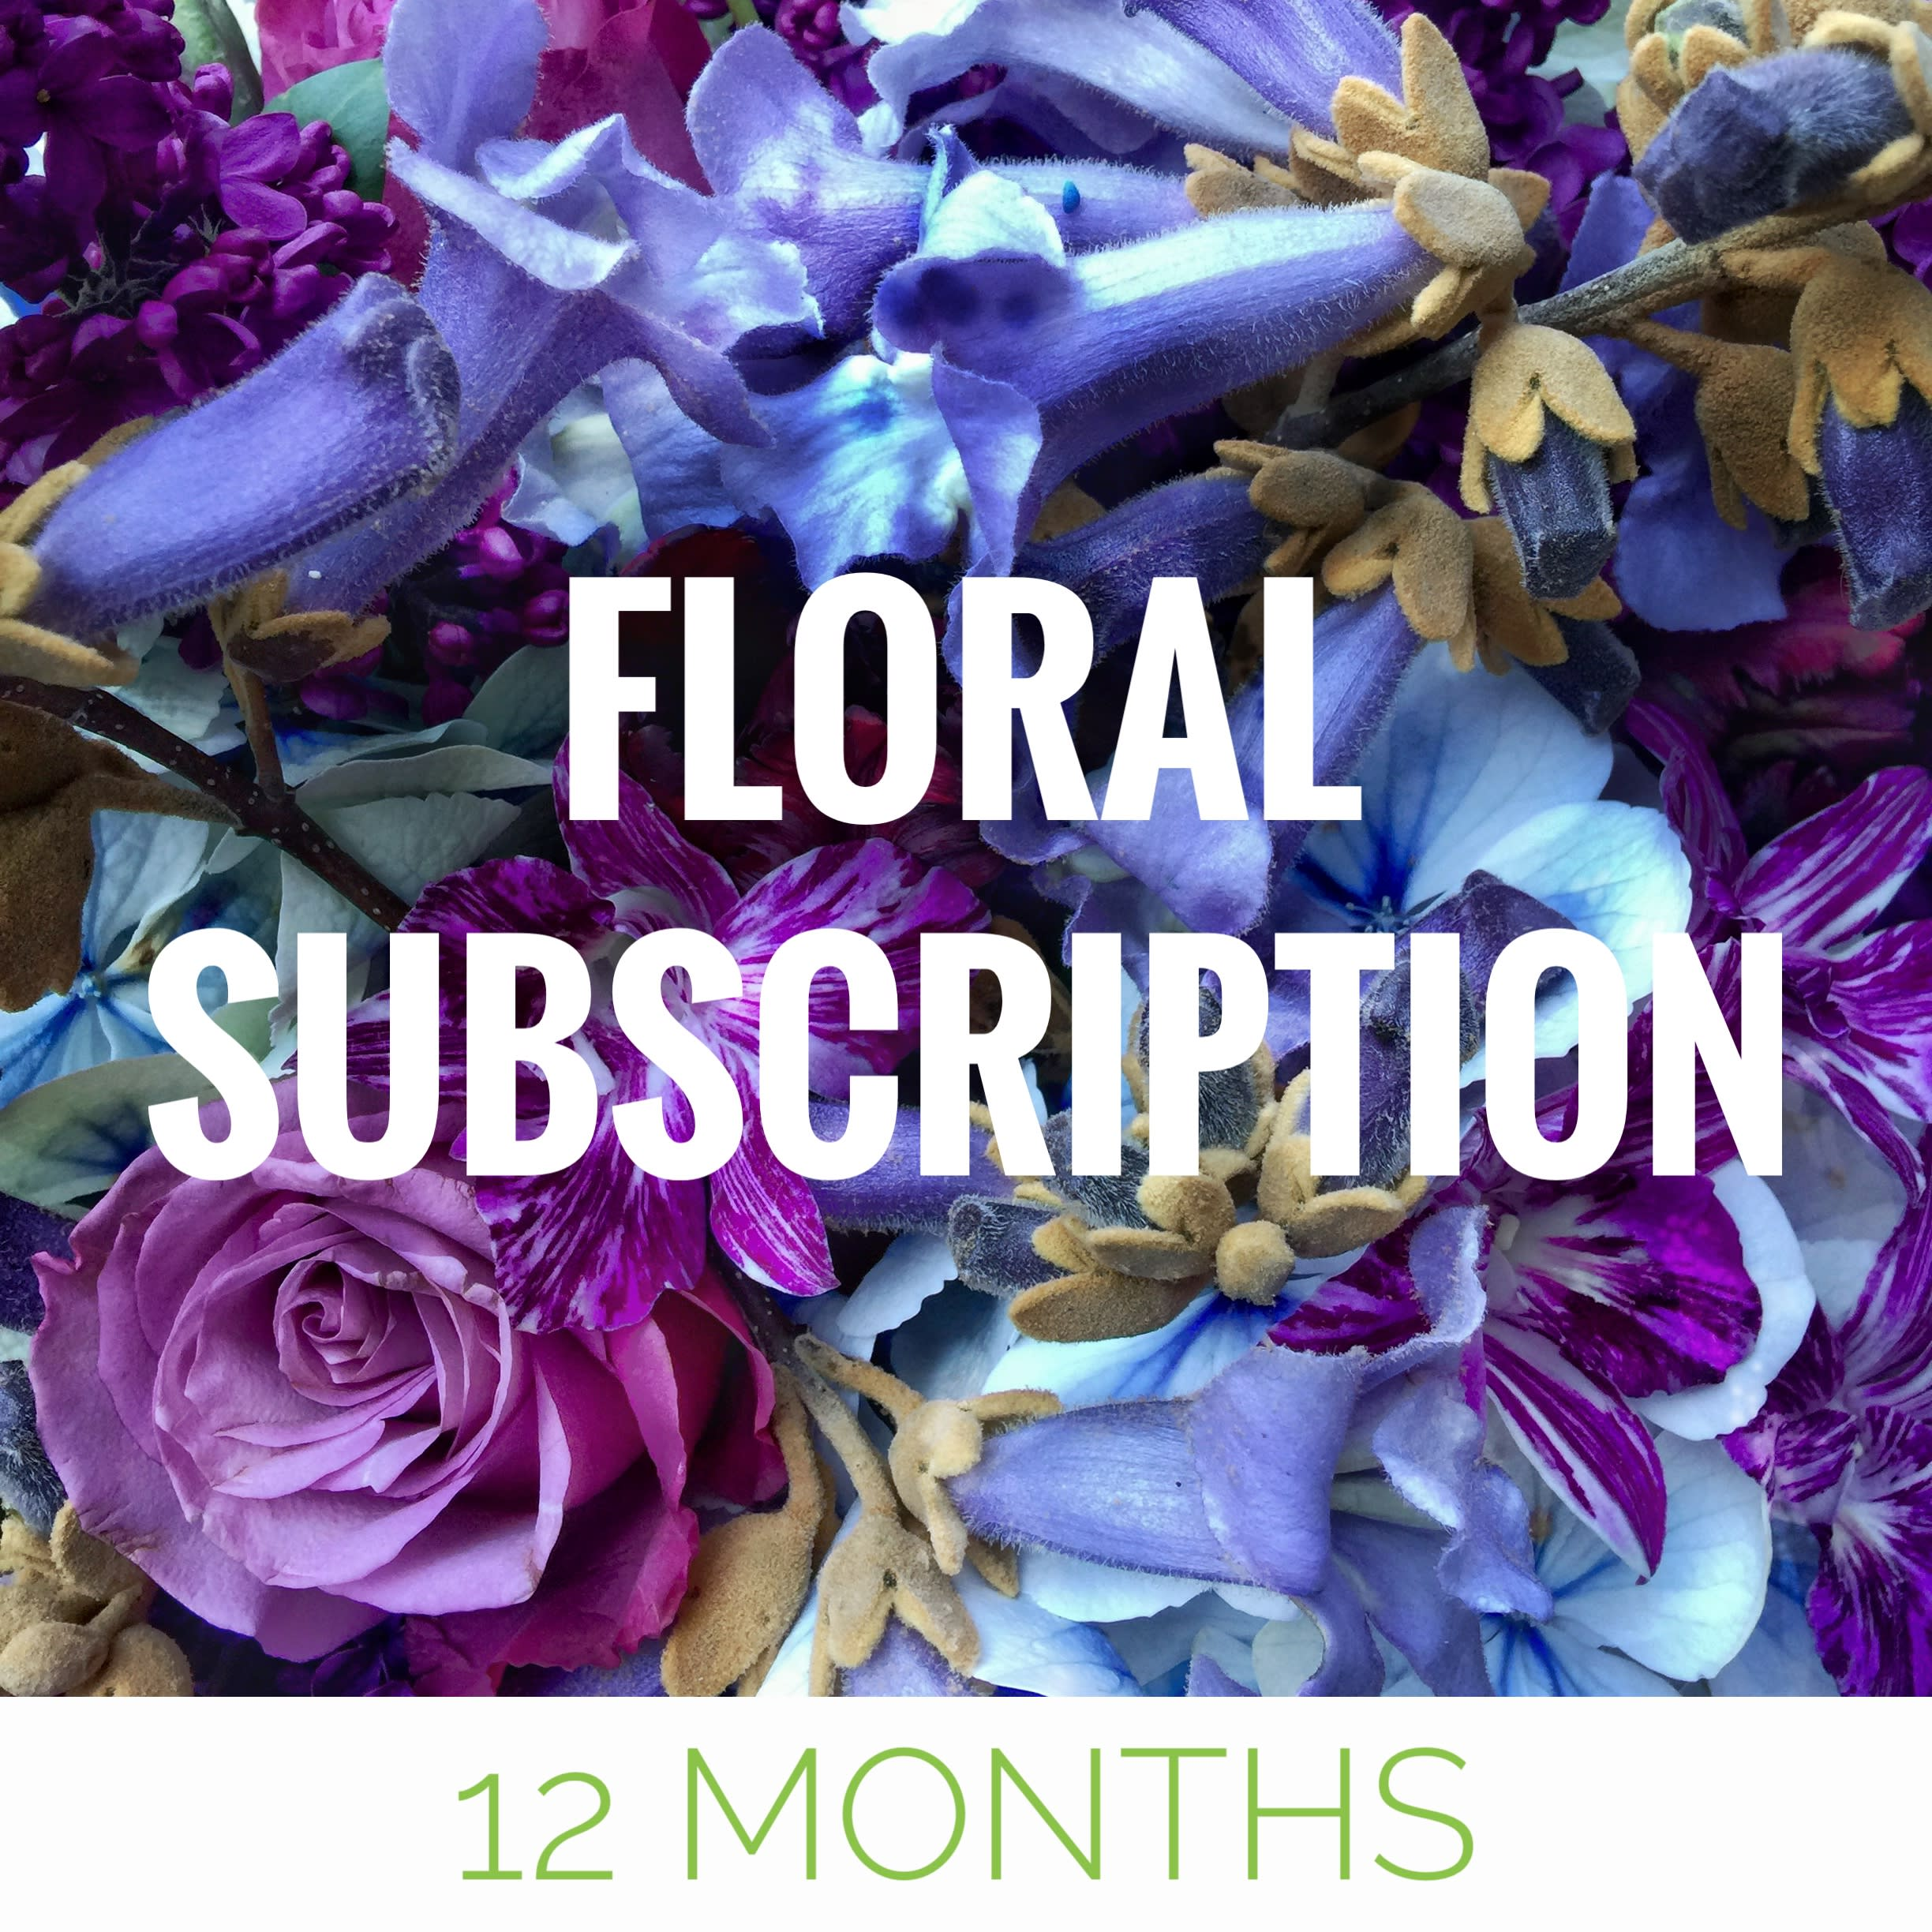 Wedding Gifts For Those Who Have Everything: 12 Month Floral Subscription In Seattle, WA